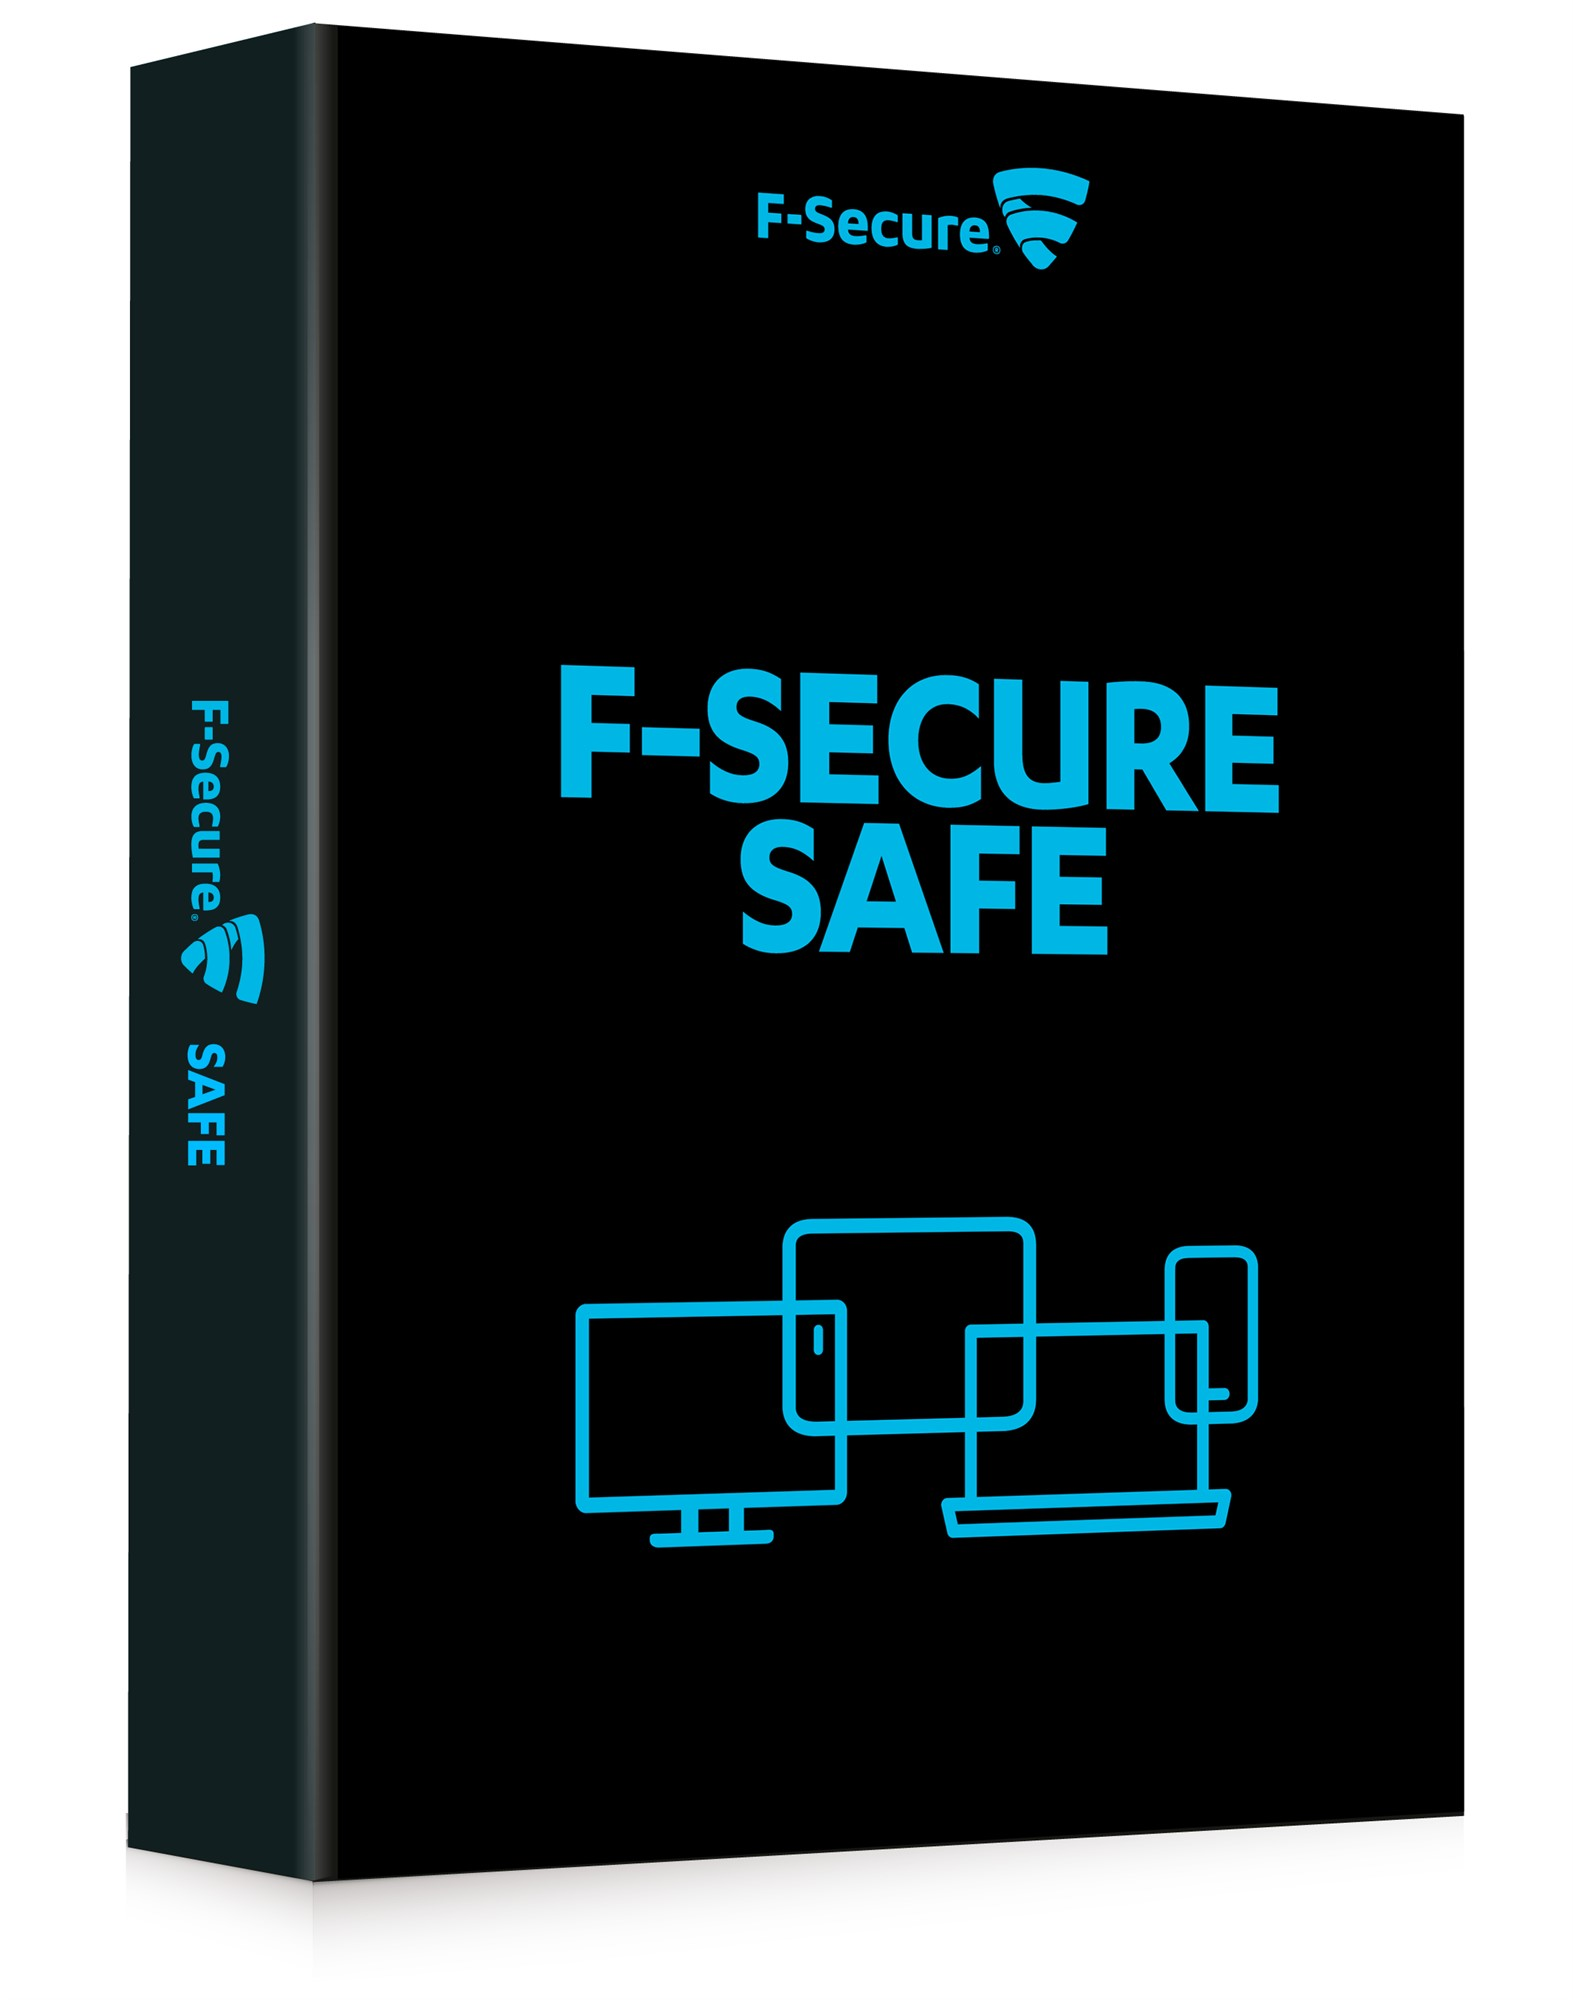 F-SECURE FCFXBR1N001E1 SAFE FULL LICENSE 1USER(S) 1YEAR(S) MULTILINGUAL